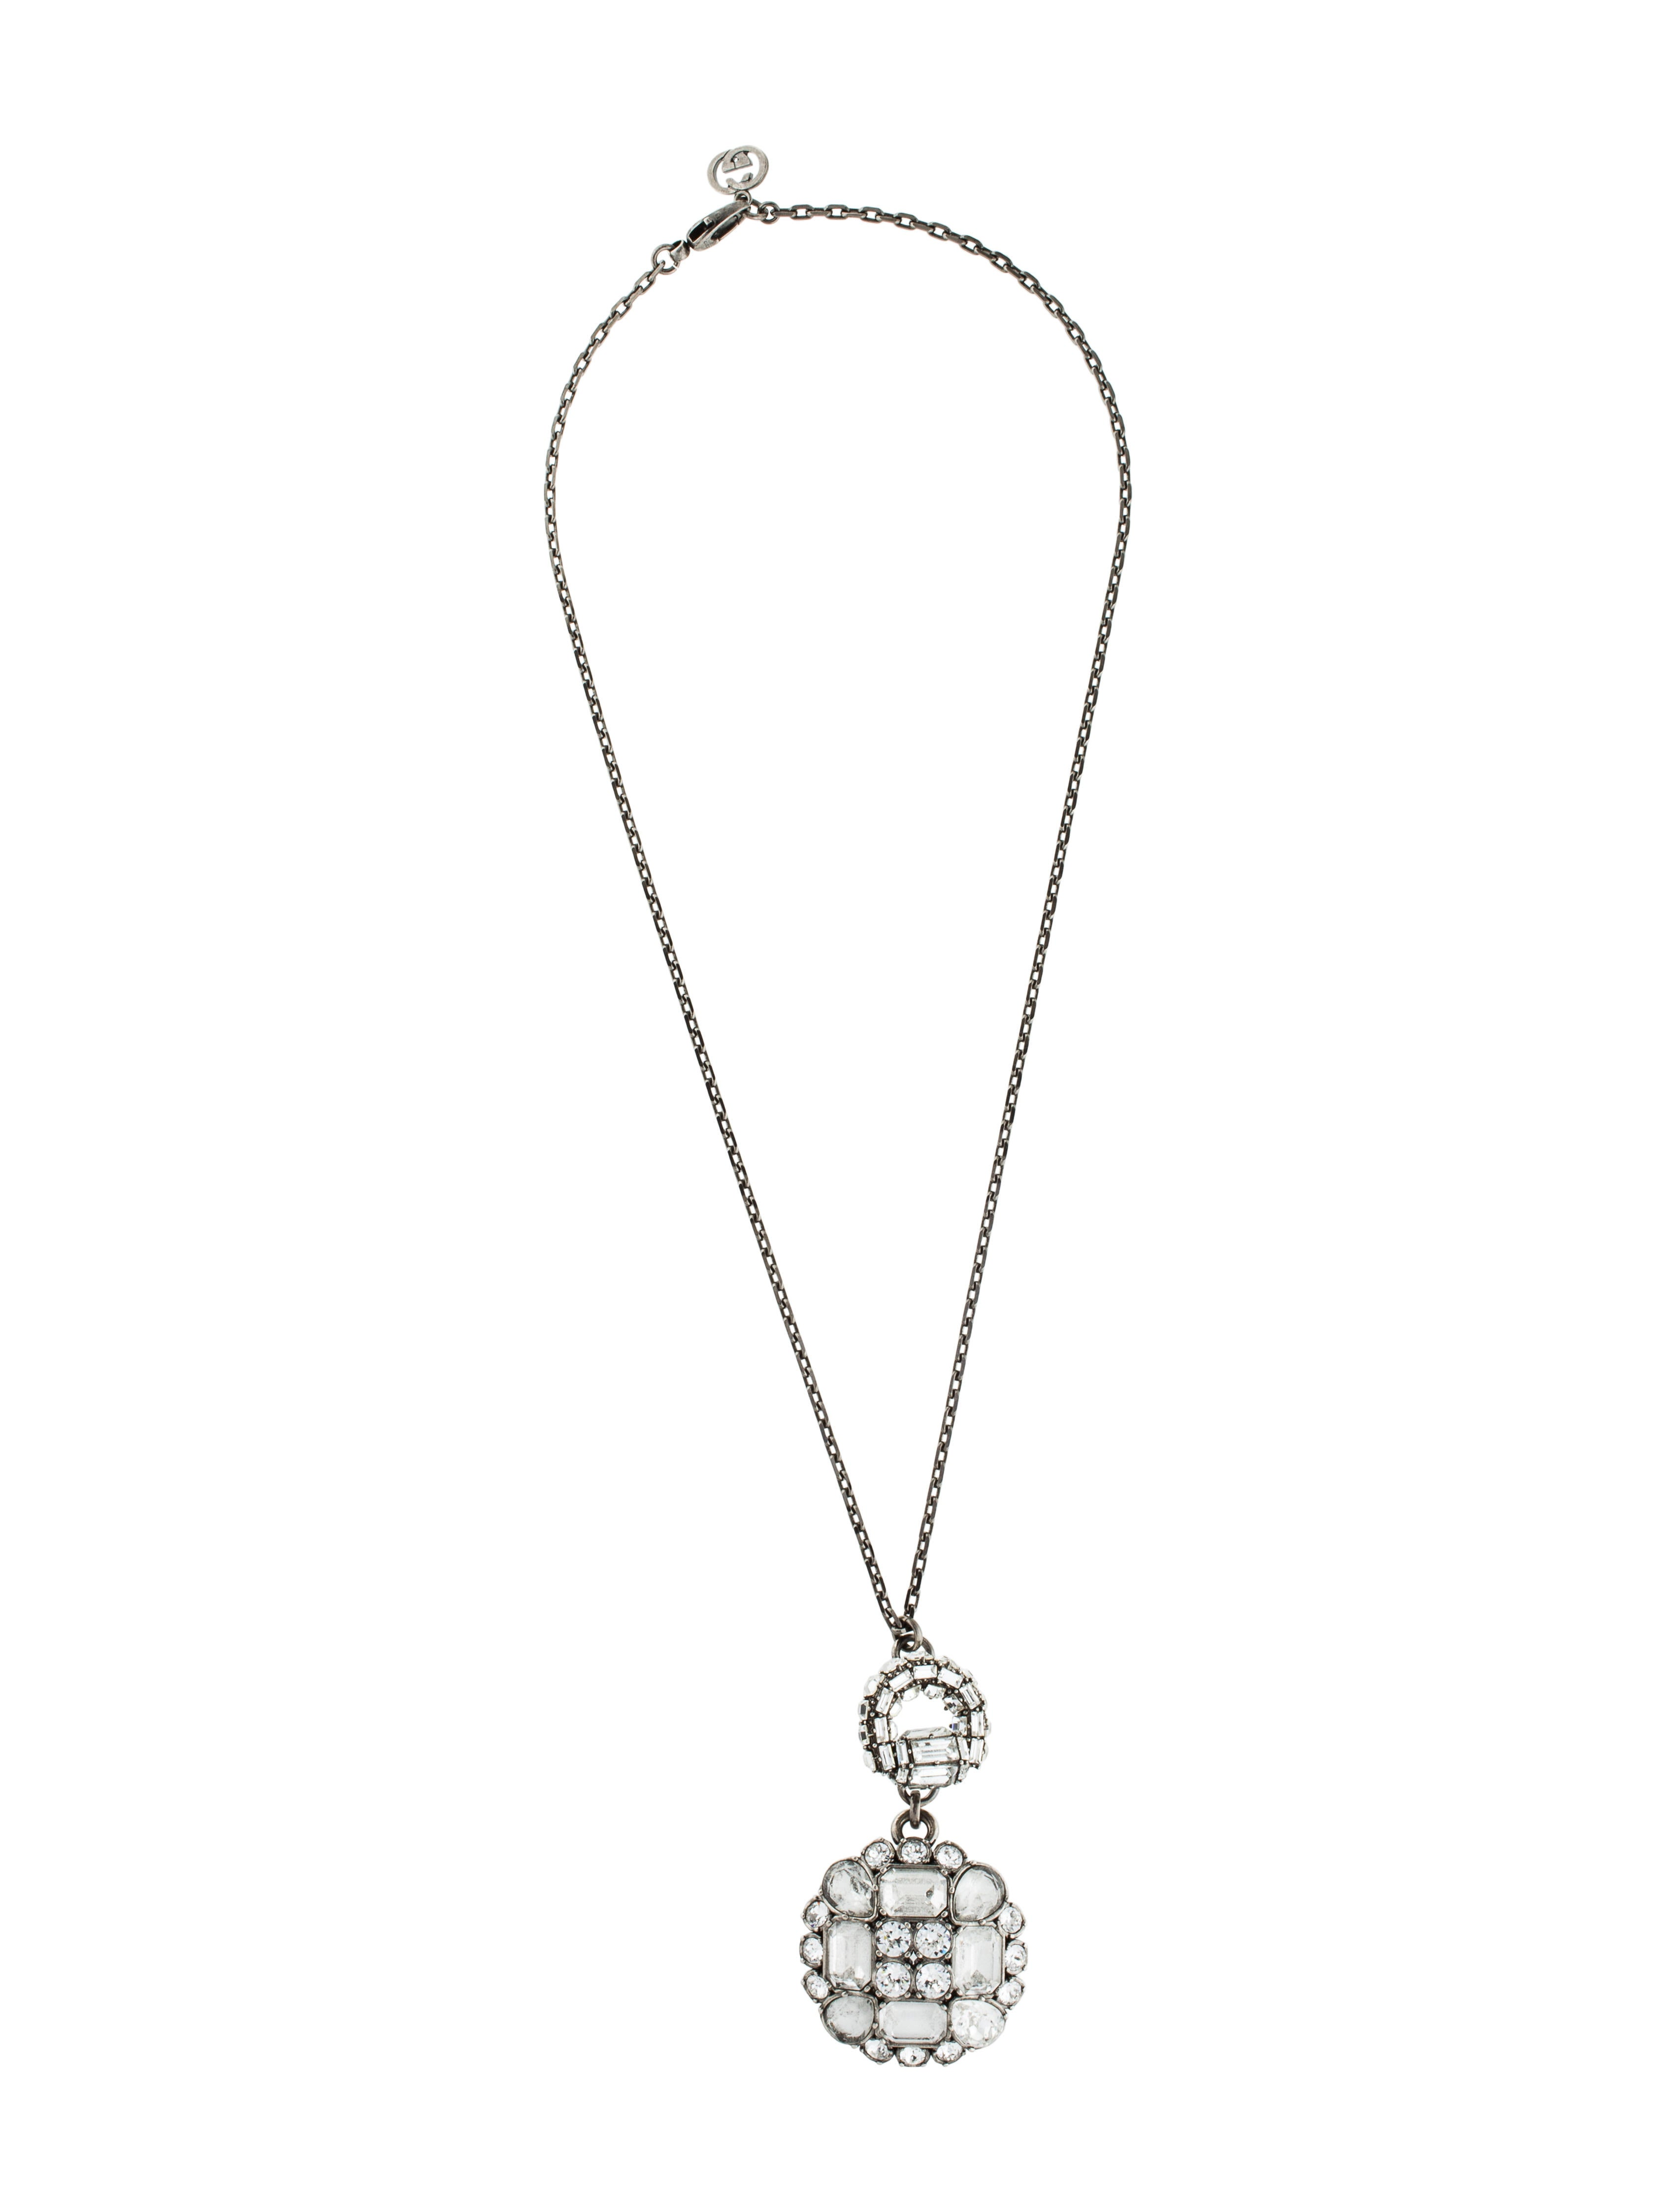 Gucci crystal horsebit large pendant necklace necklaces crystal horsebit large pendant necklace aloadofball Image collections